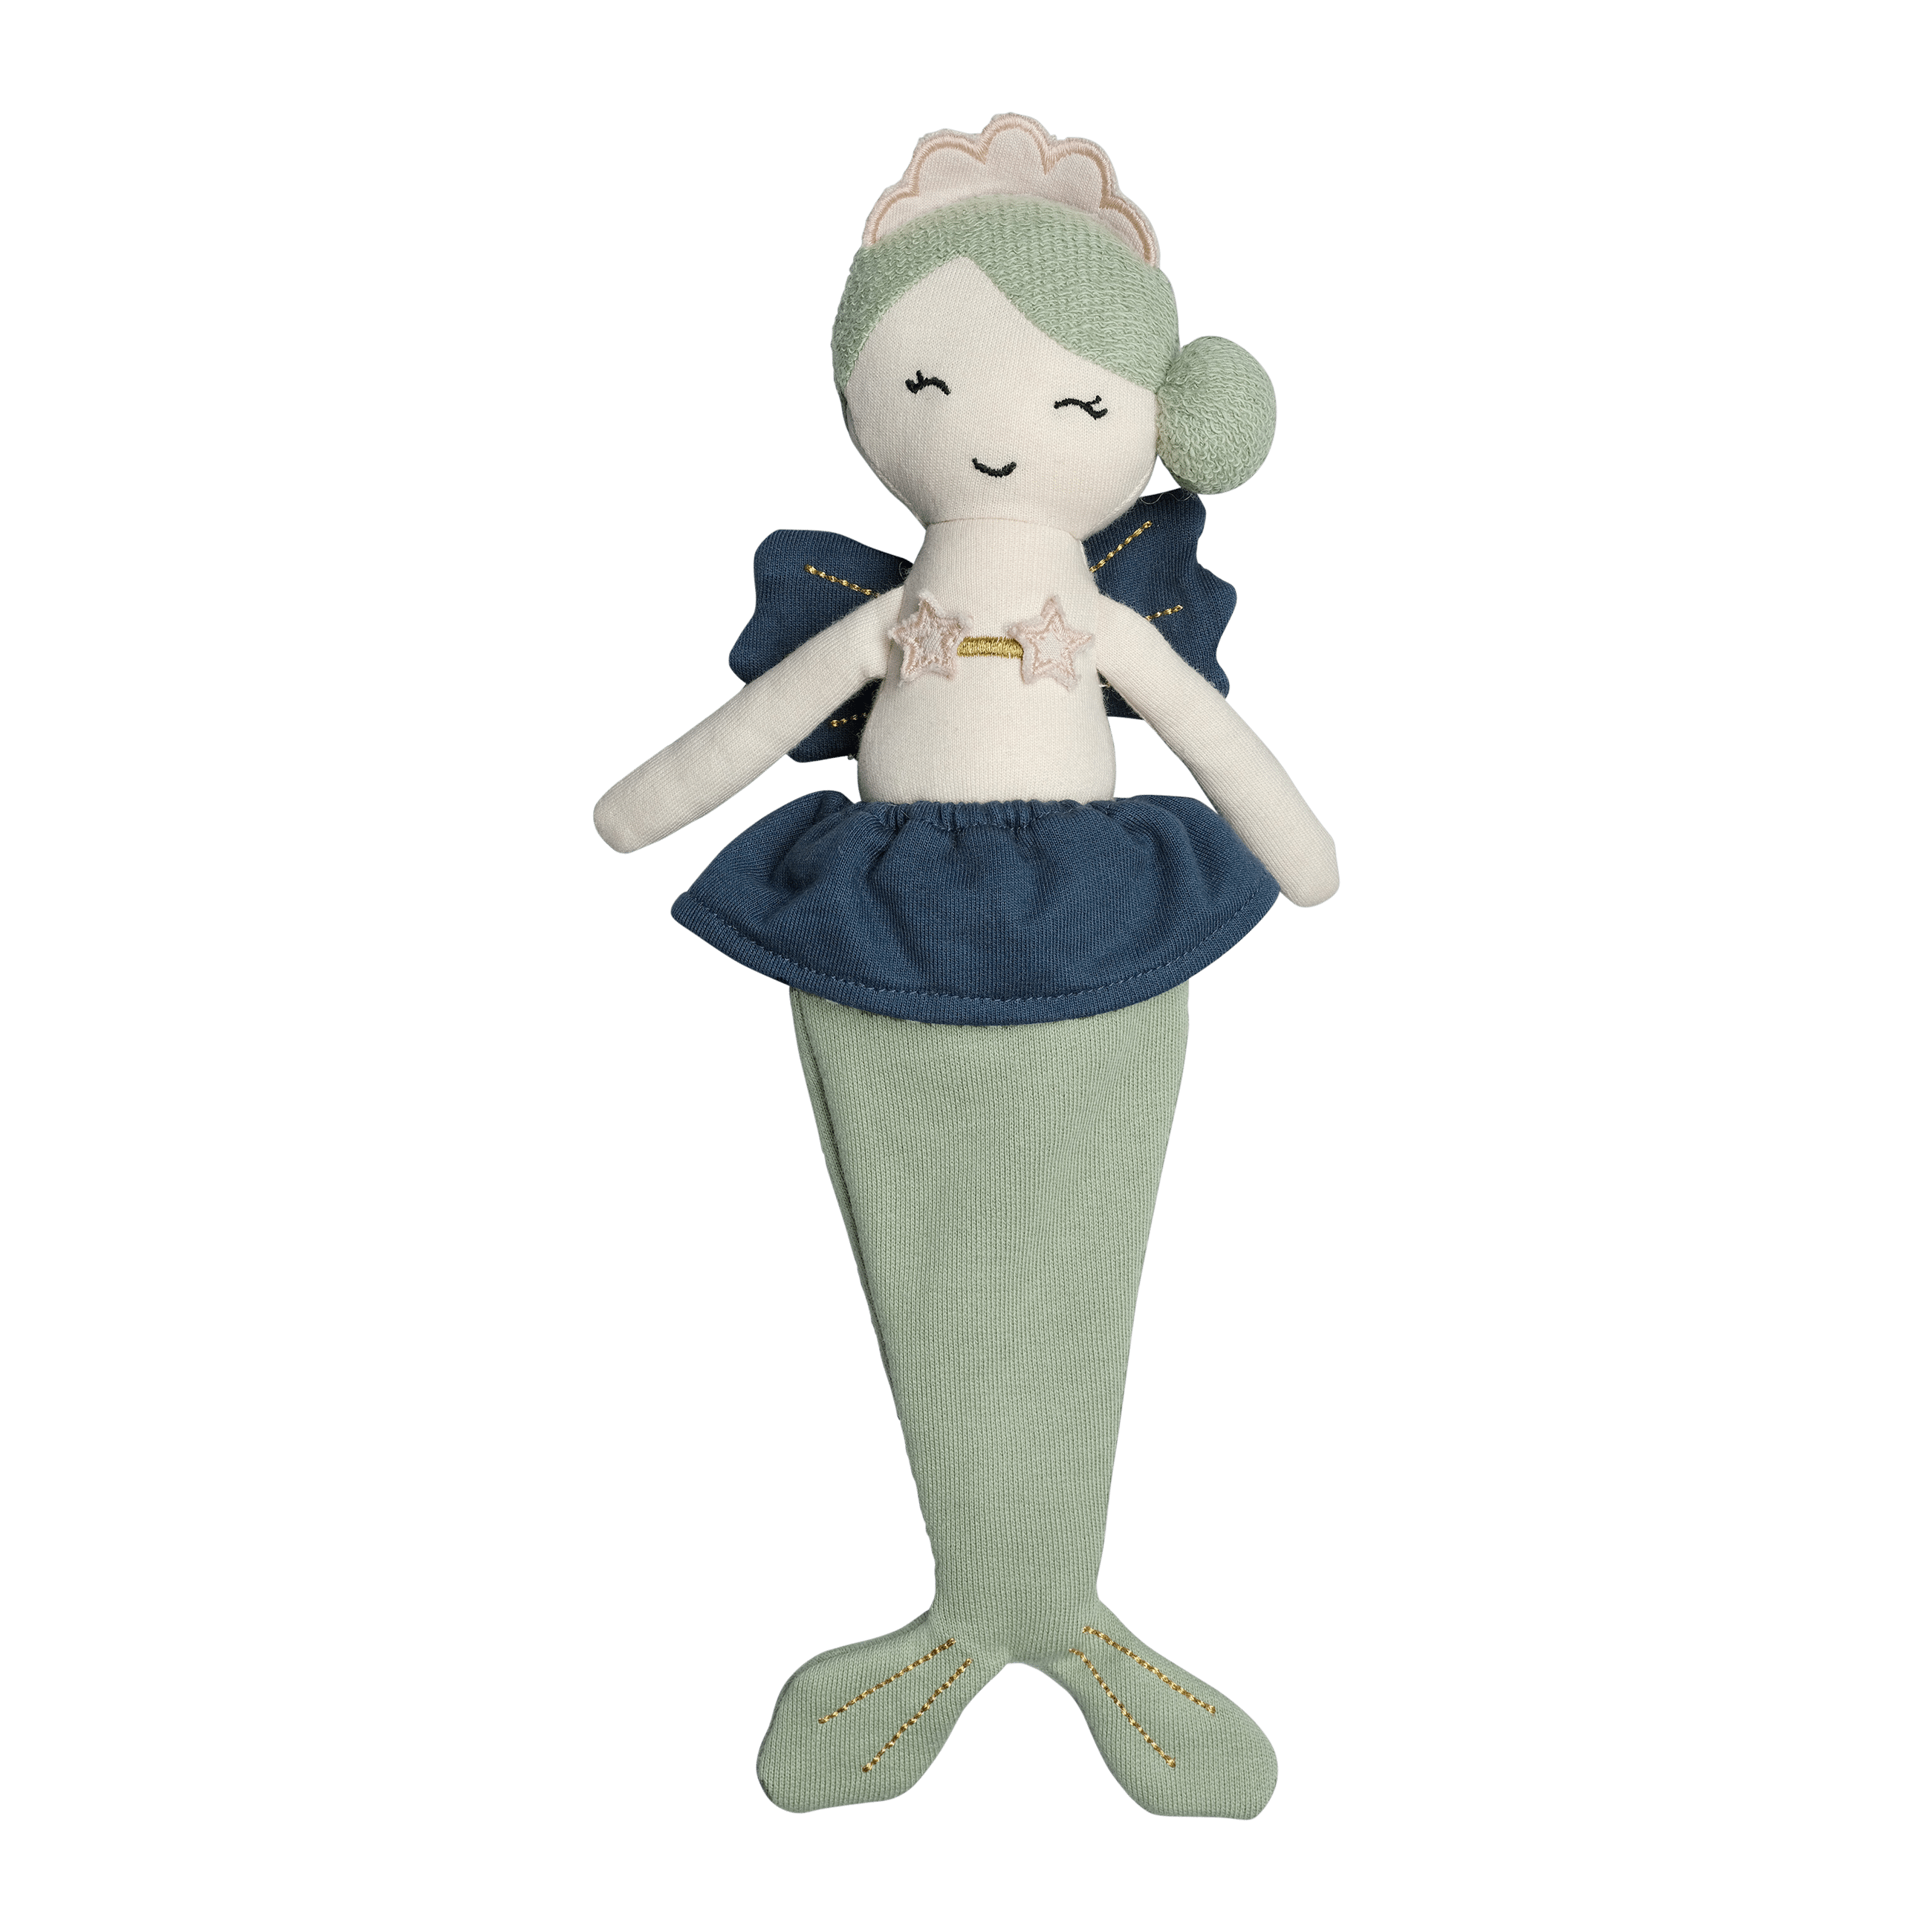 Doll - Mermaid